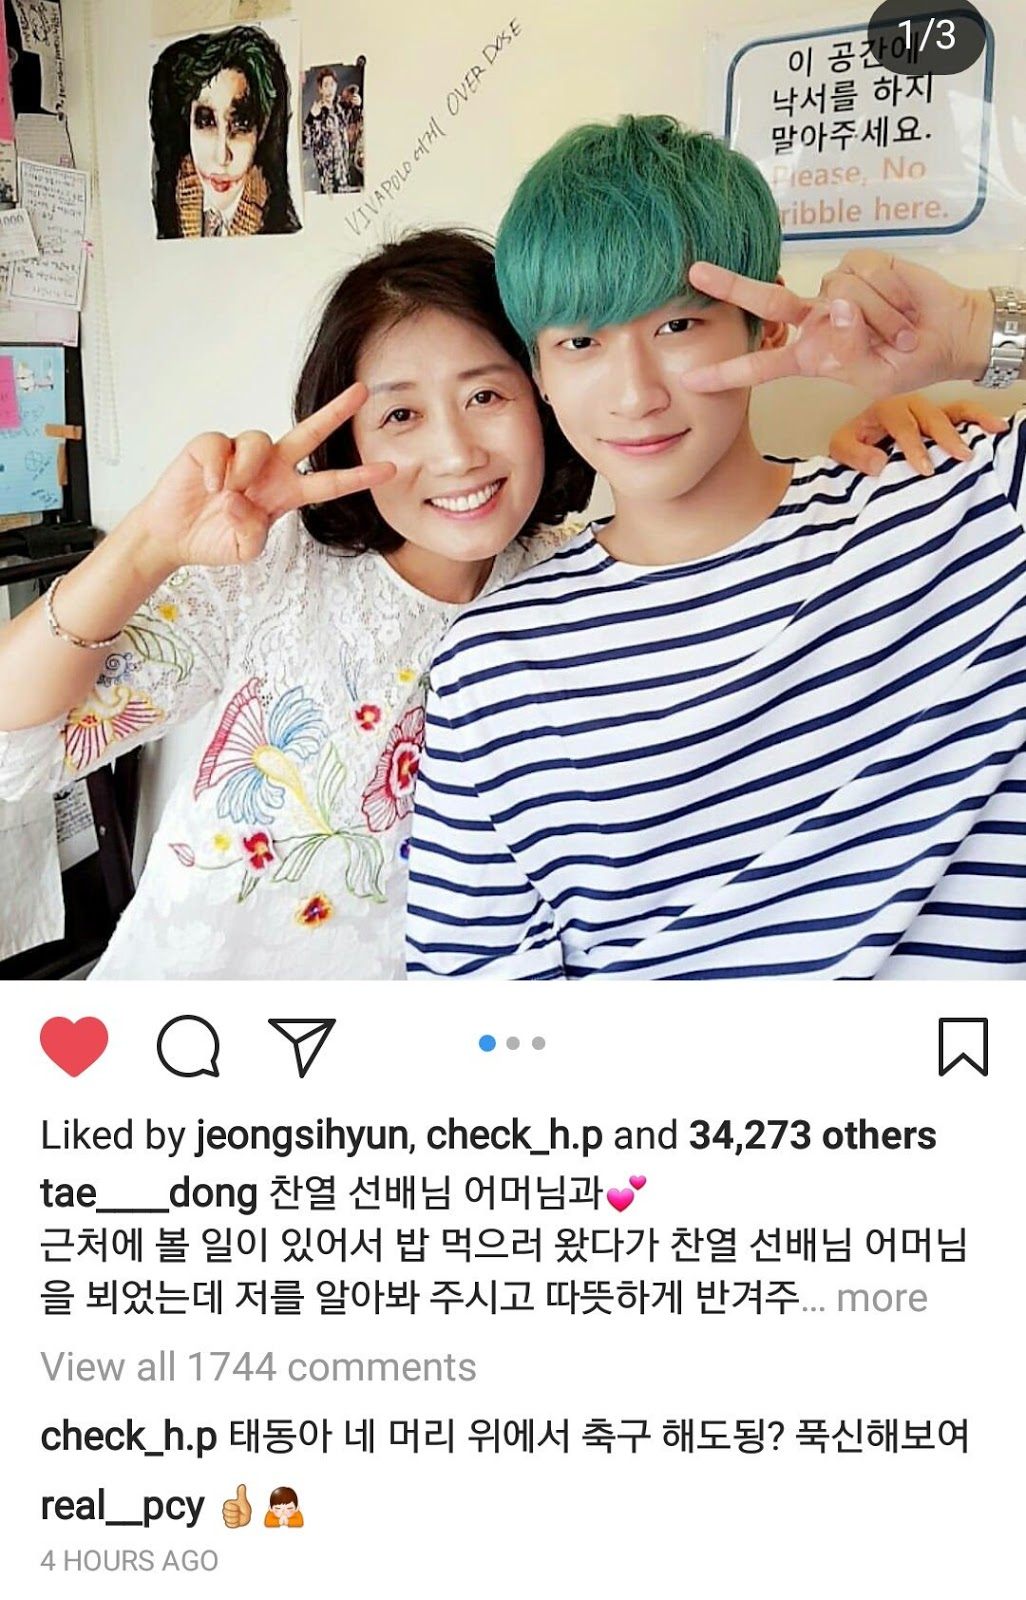 [TRANS] 170625 Chanyeol left a comment on Kim Taedong (Producr 101) Instagram post